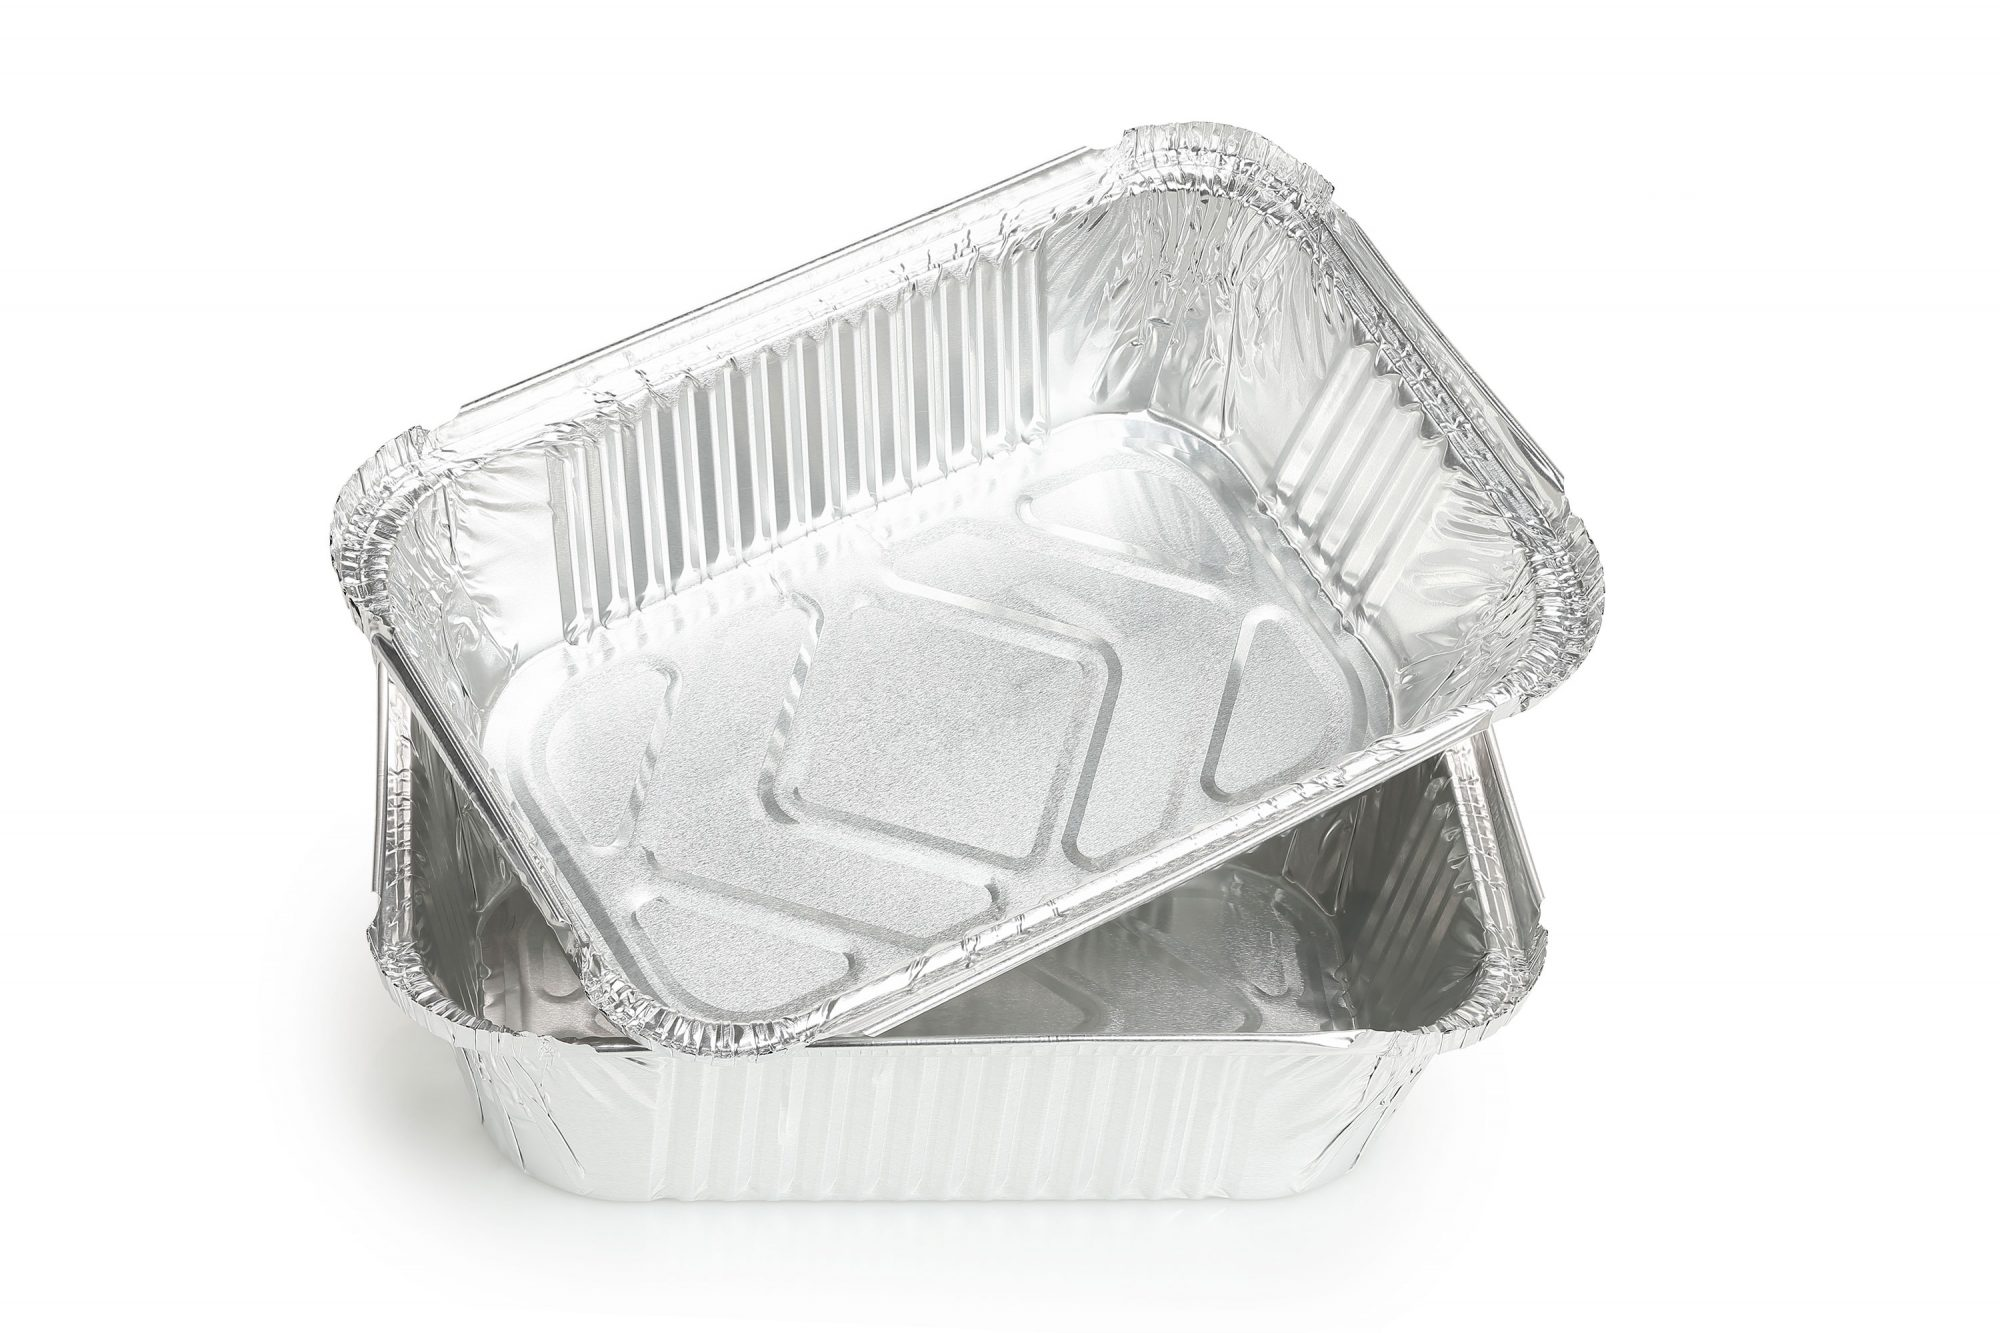 Aluminum Take-Out Bowls